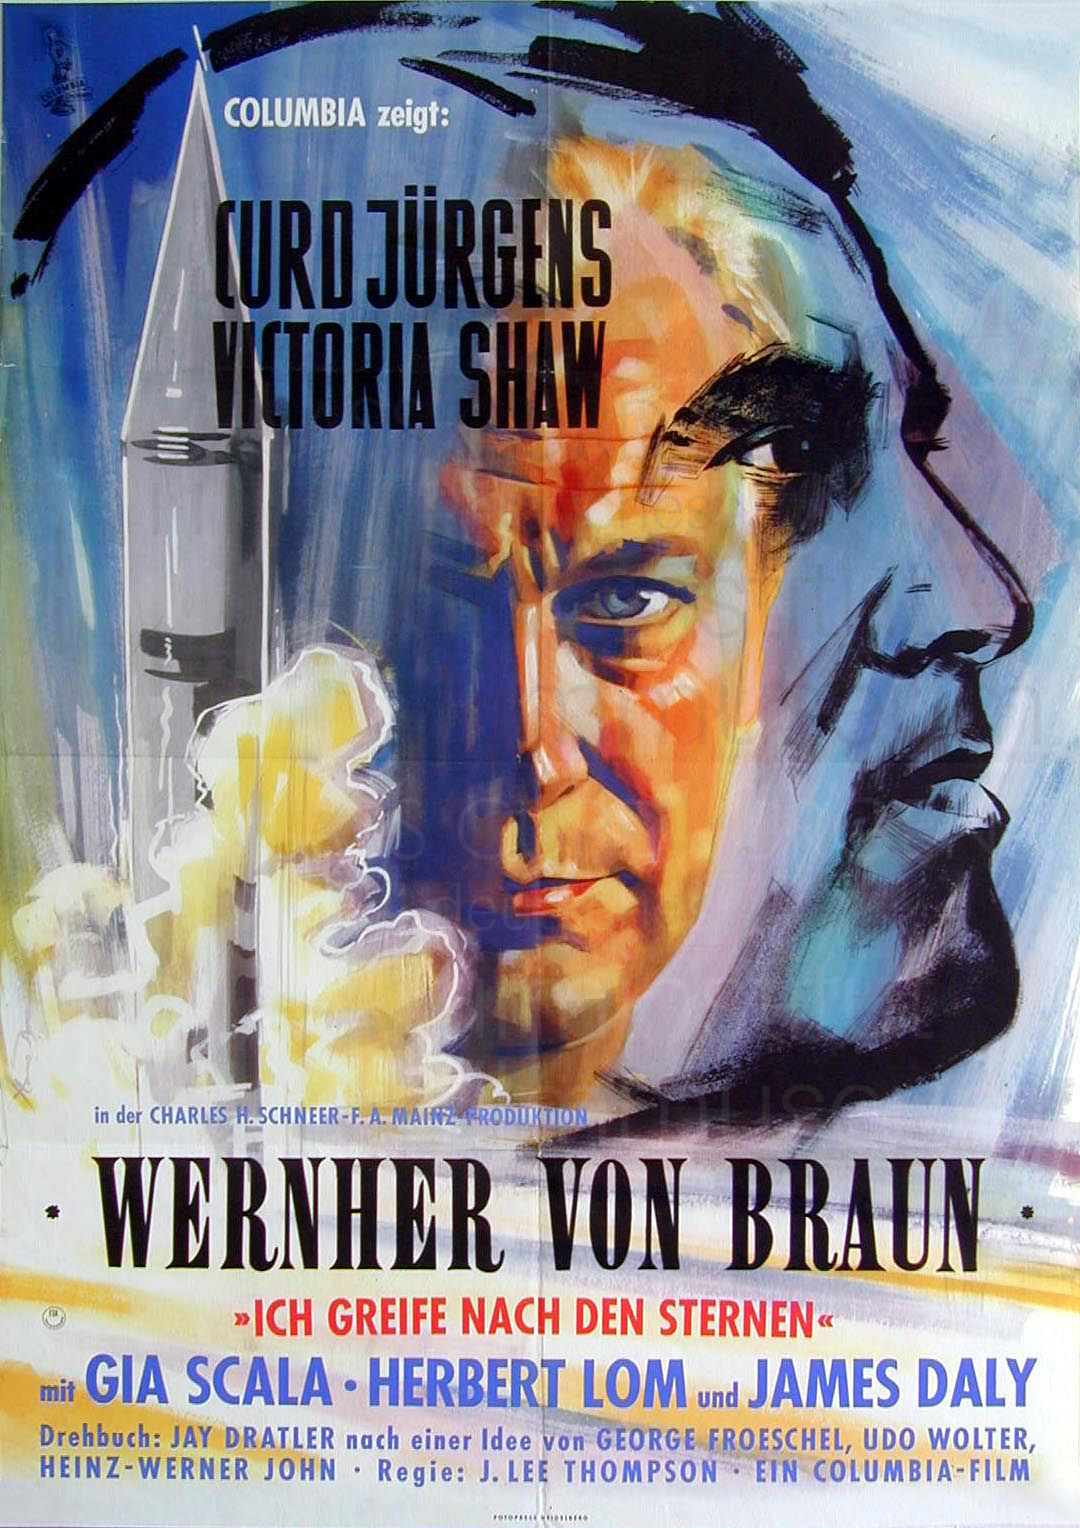 WERNHER VON BRAUN – I AIM AT THE STARS (1960)